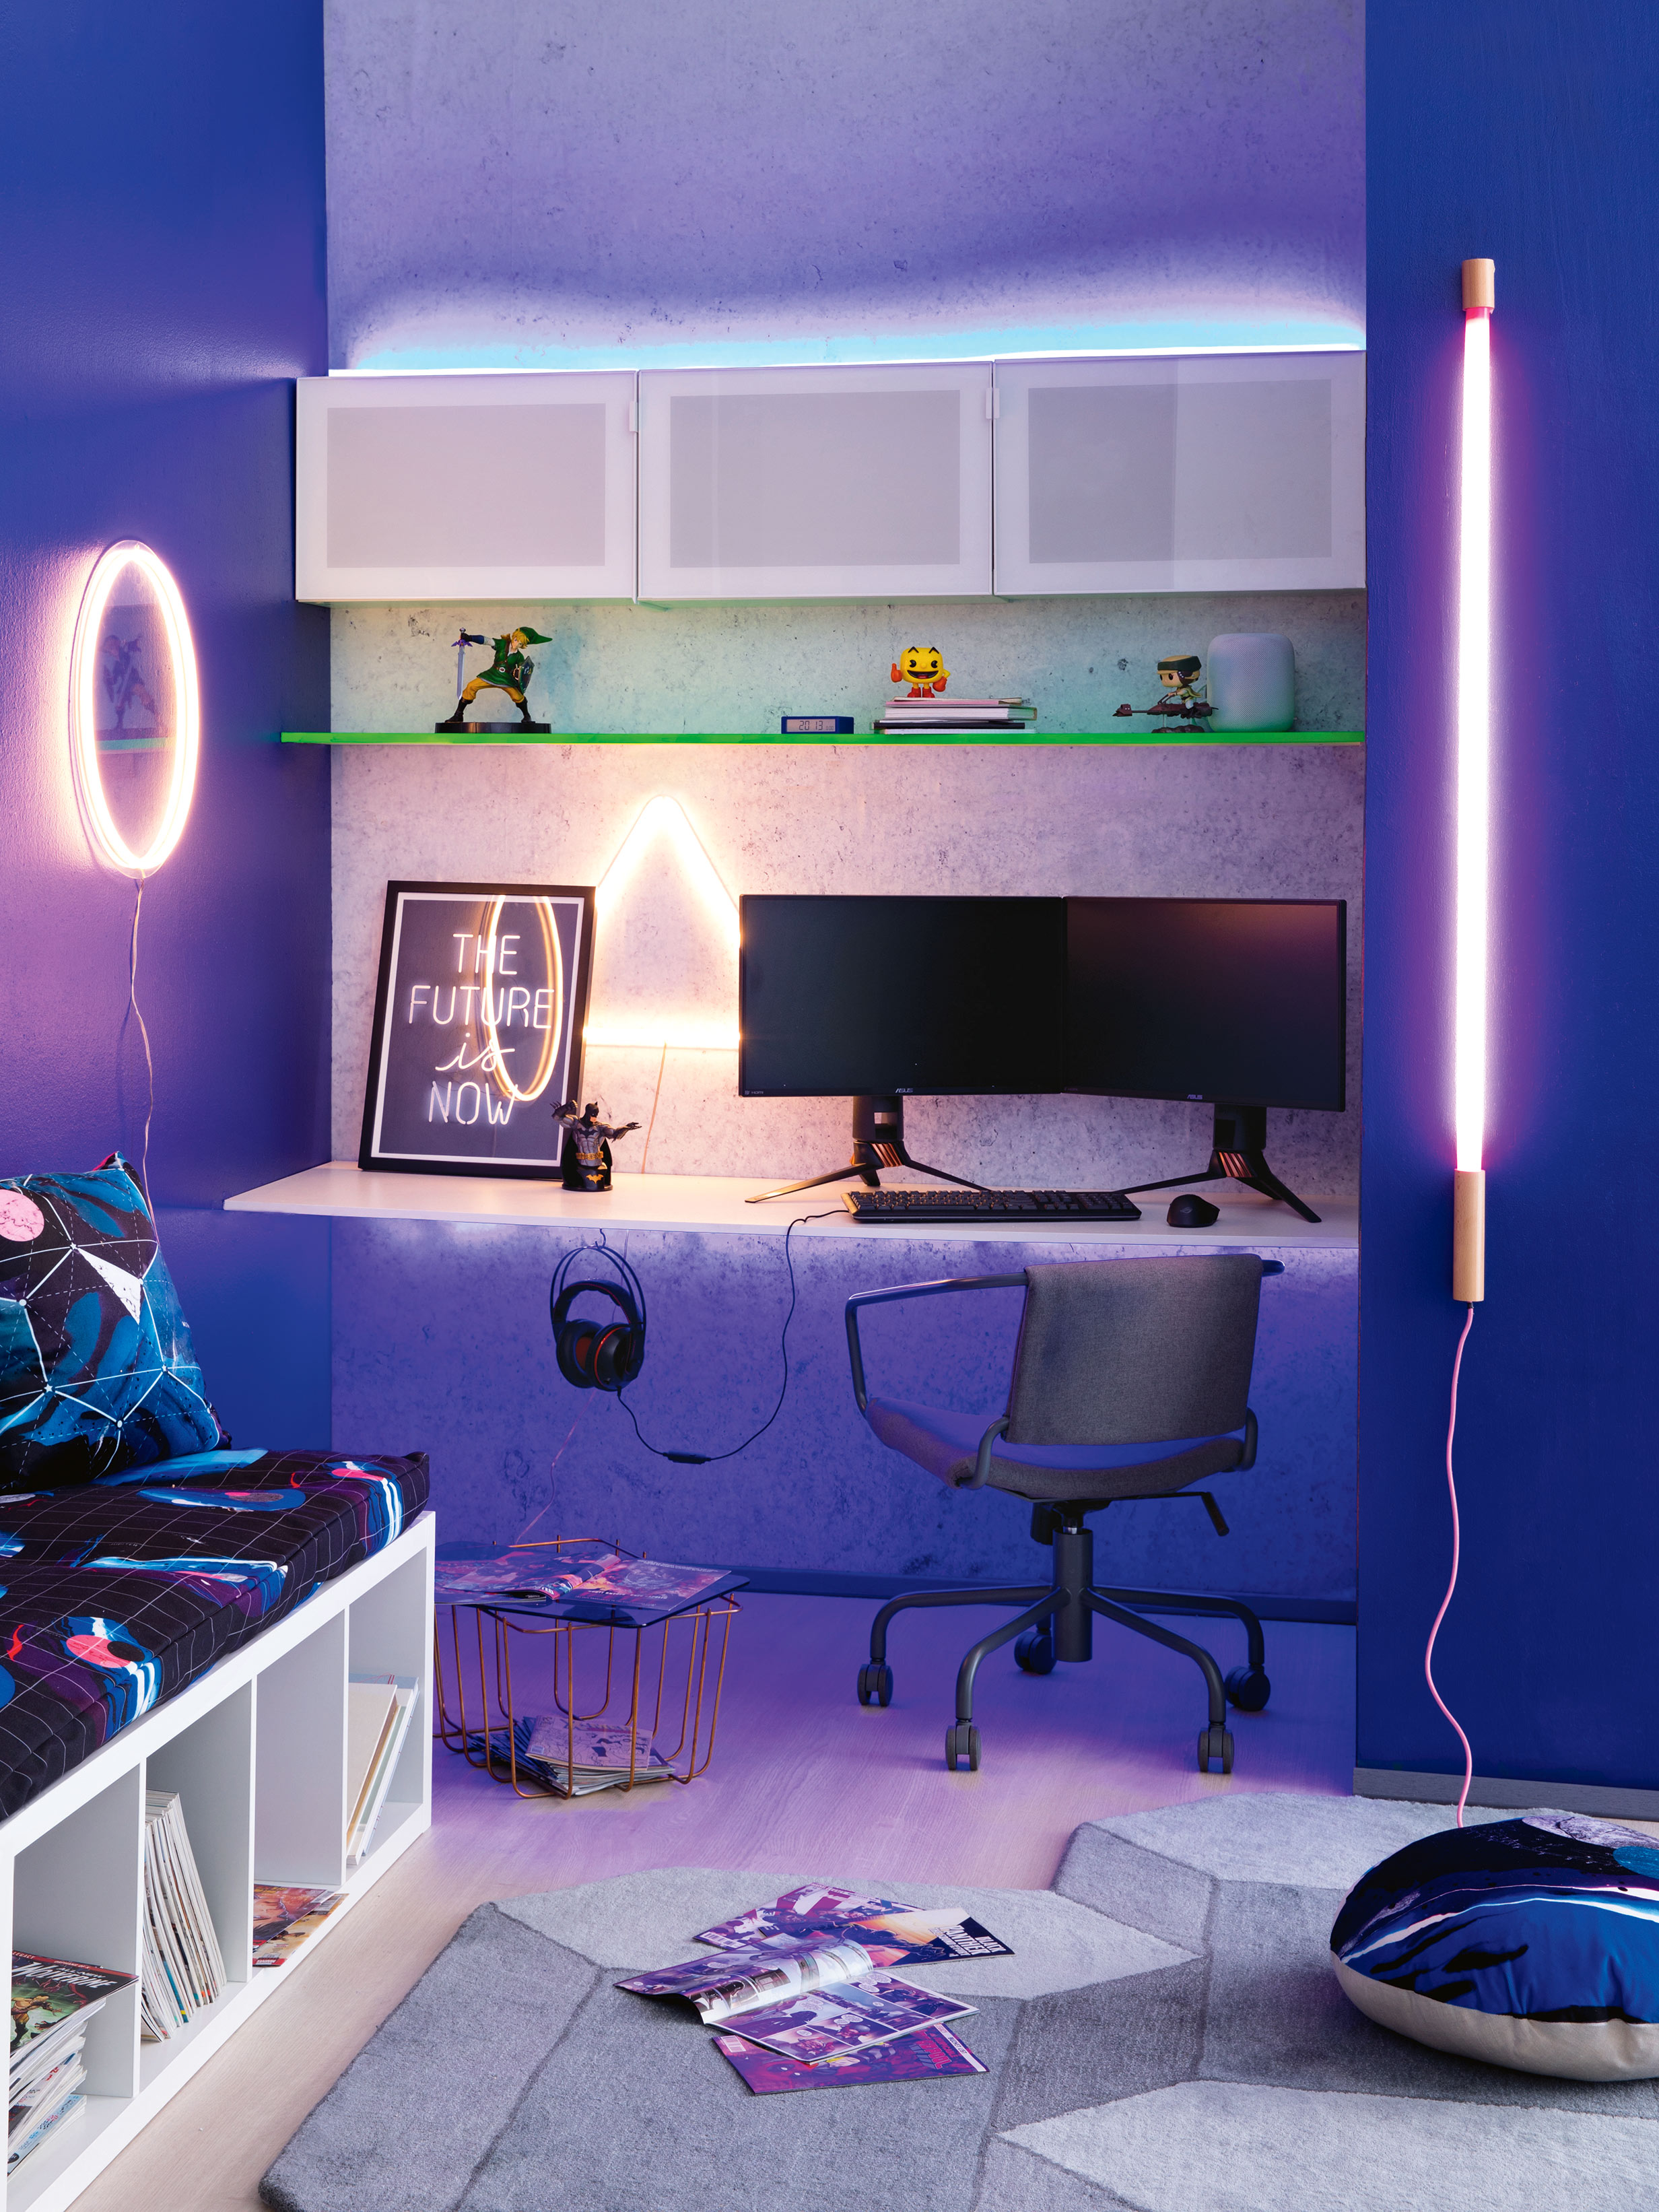 'Gamer's Retreat' photography by Sam McAdam Cooper